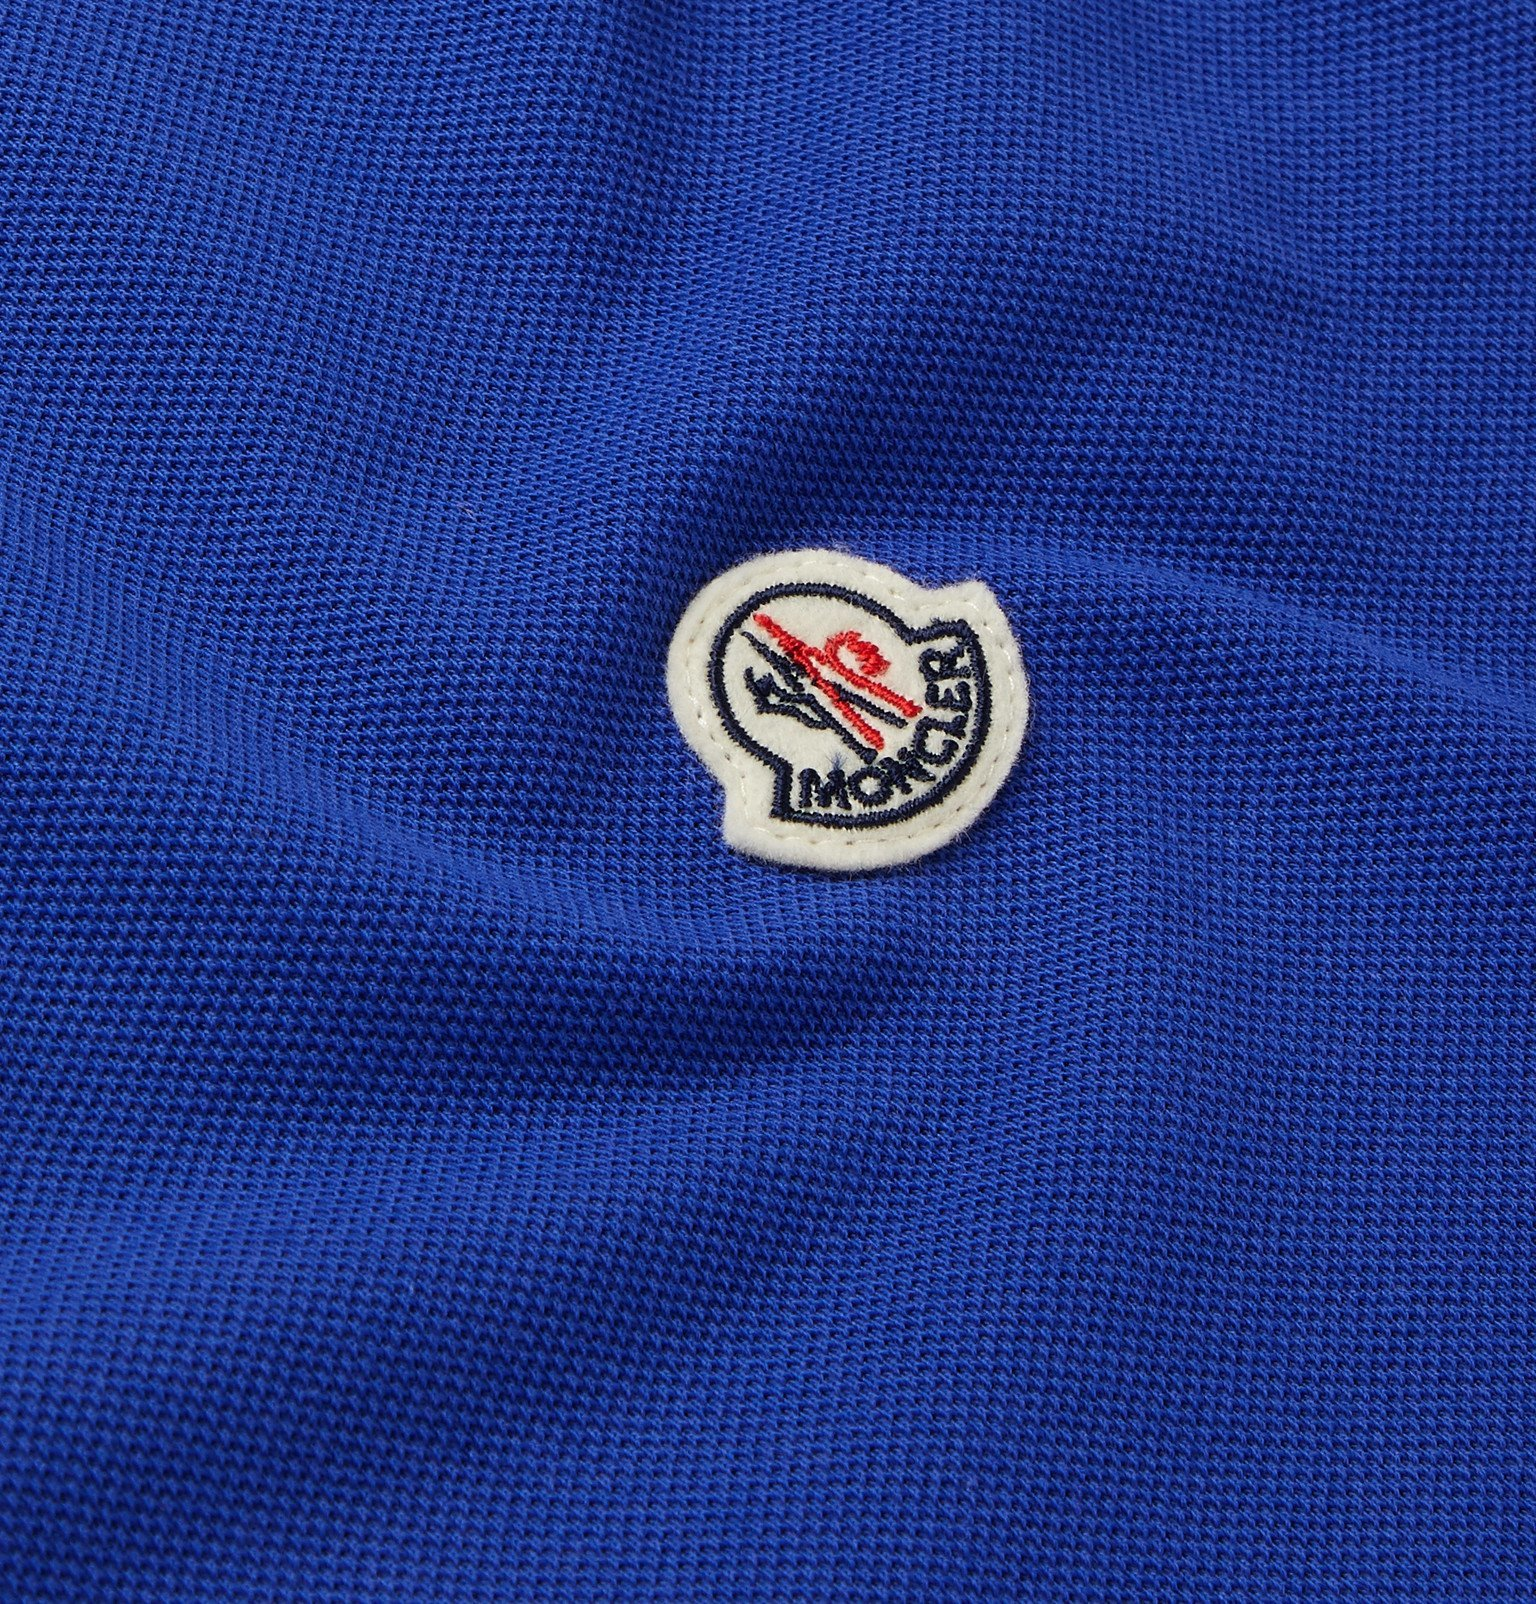 Moncler - Contrast-Tipped Cotton-Piqué Polo Shirt - Blue